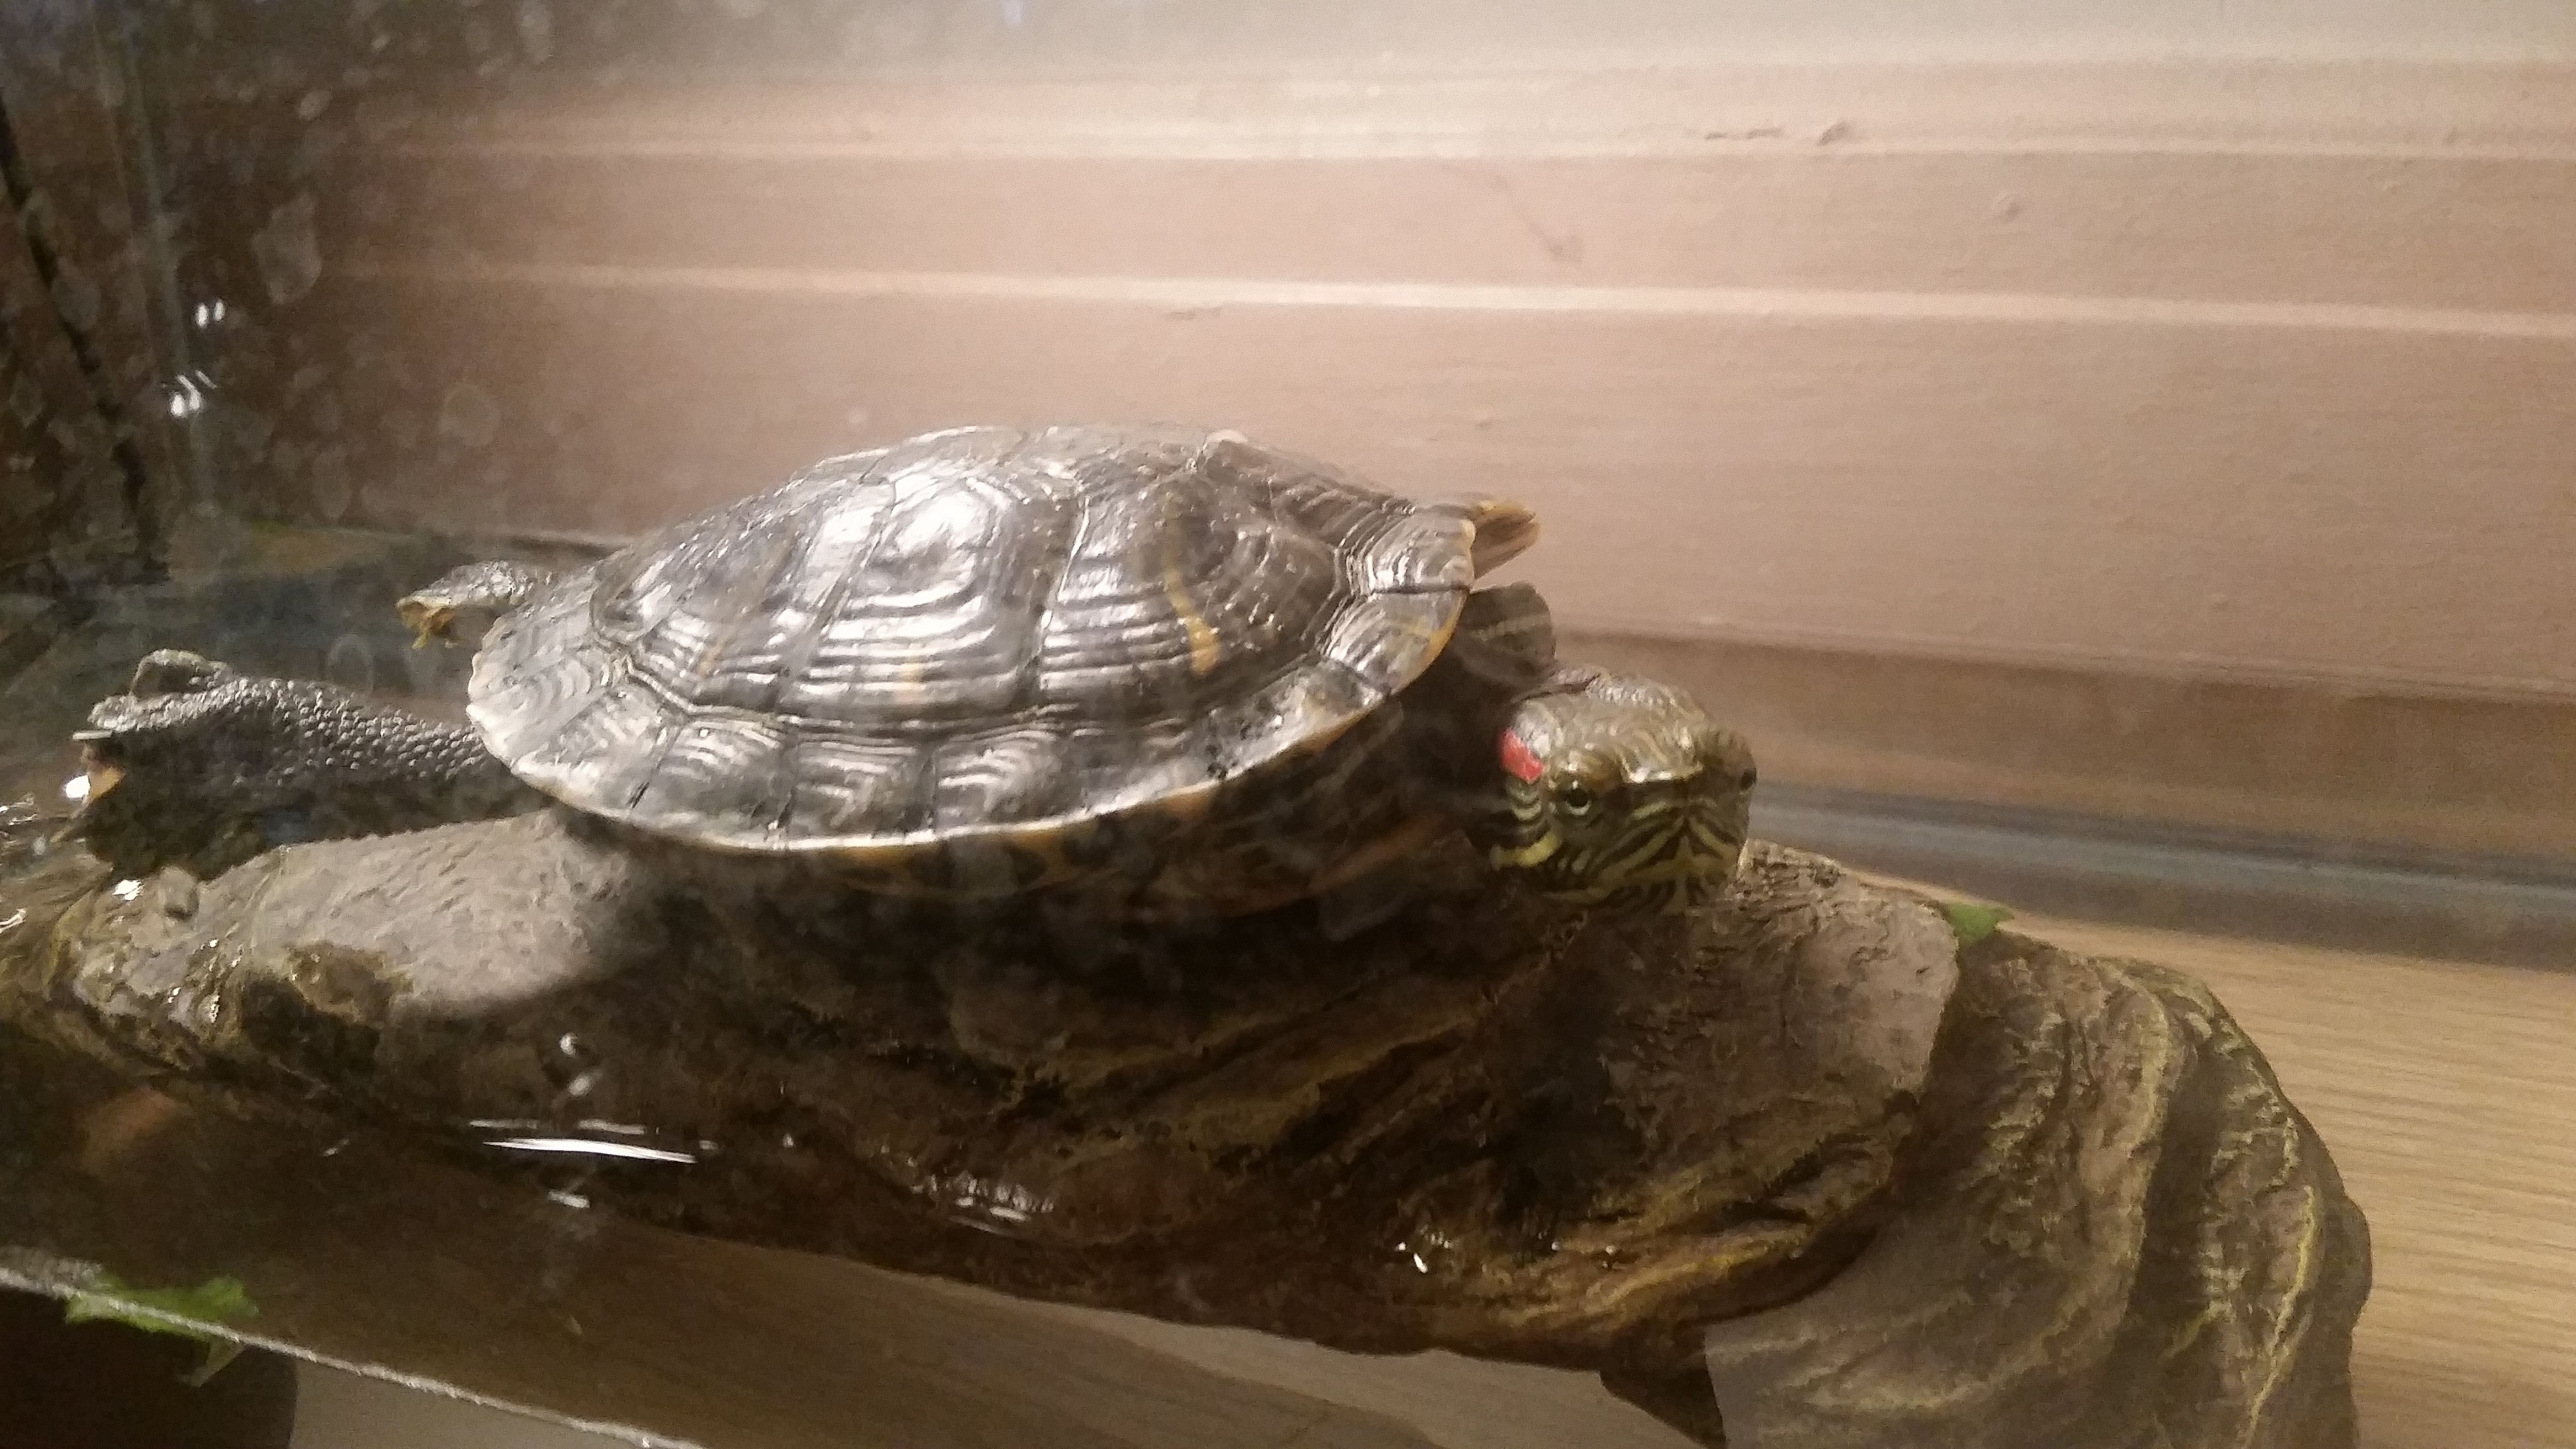 I adopted a Red Eared Slider turtle who had suffered 15 YEARS of